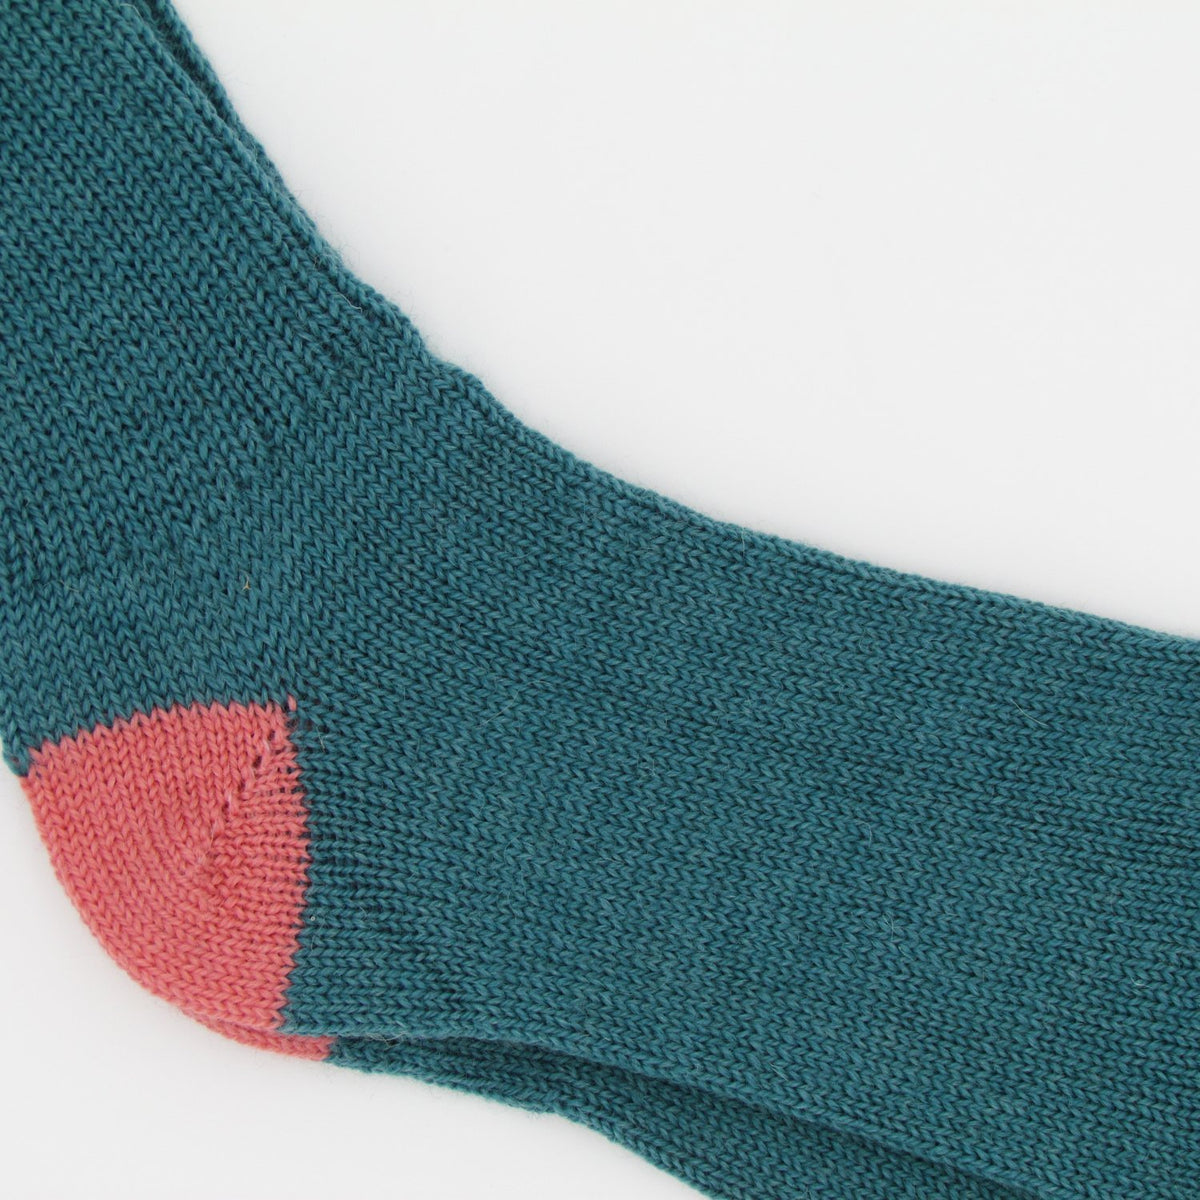 Soft Wool Socks - Aqua/Salmon